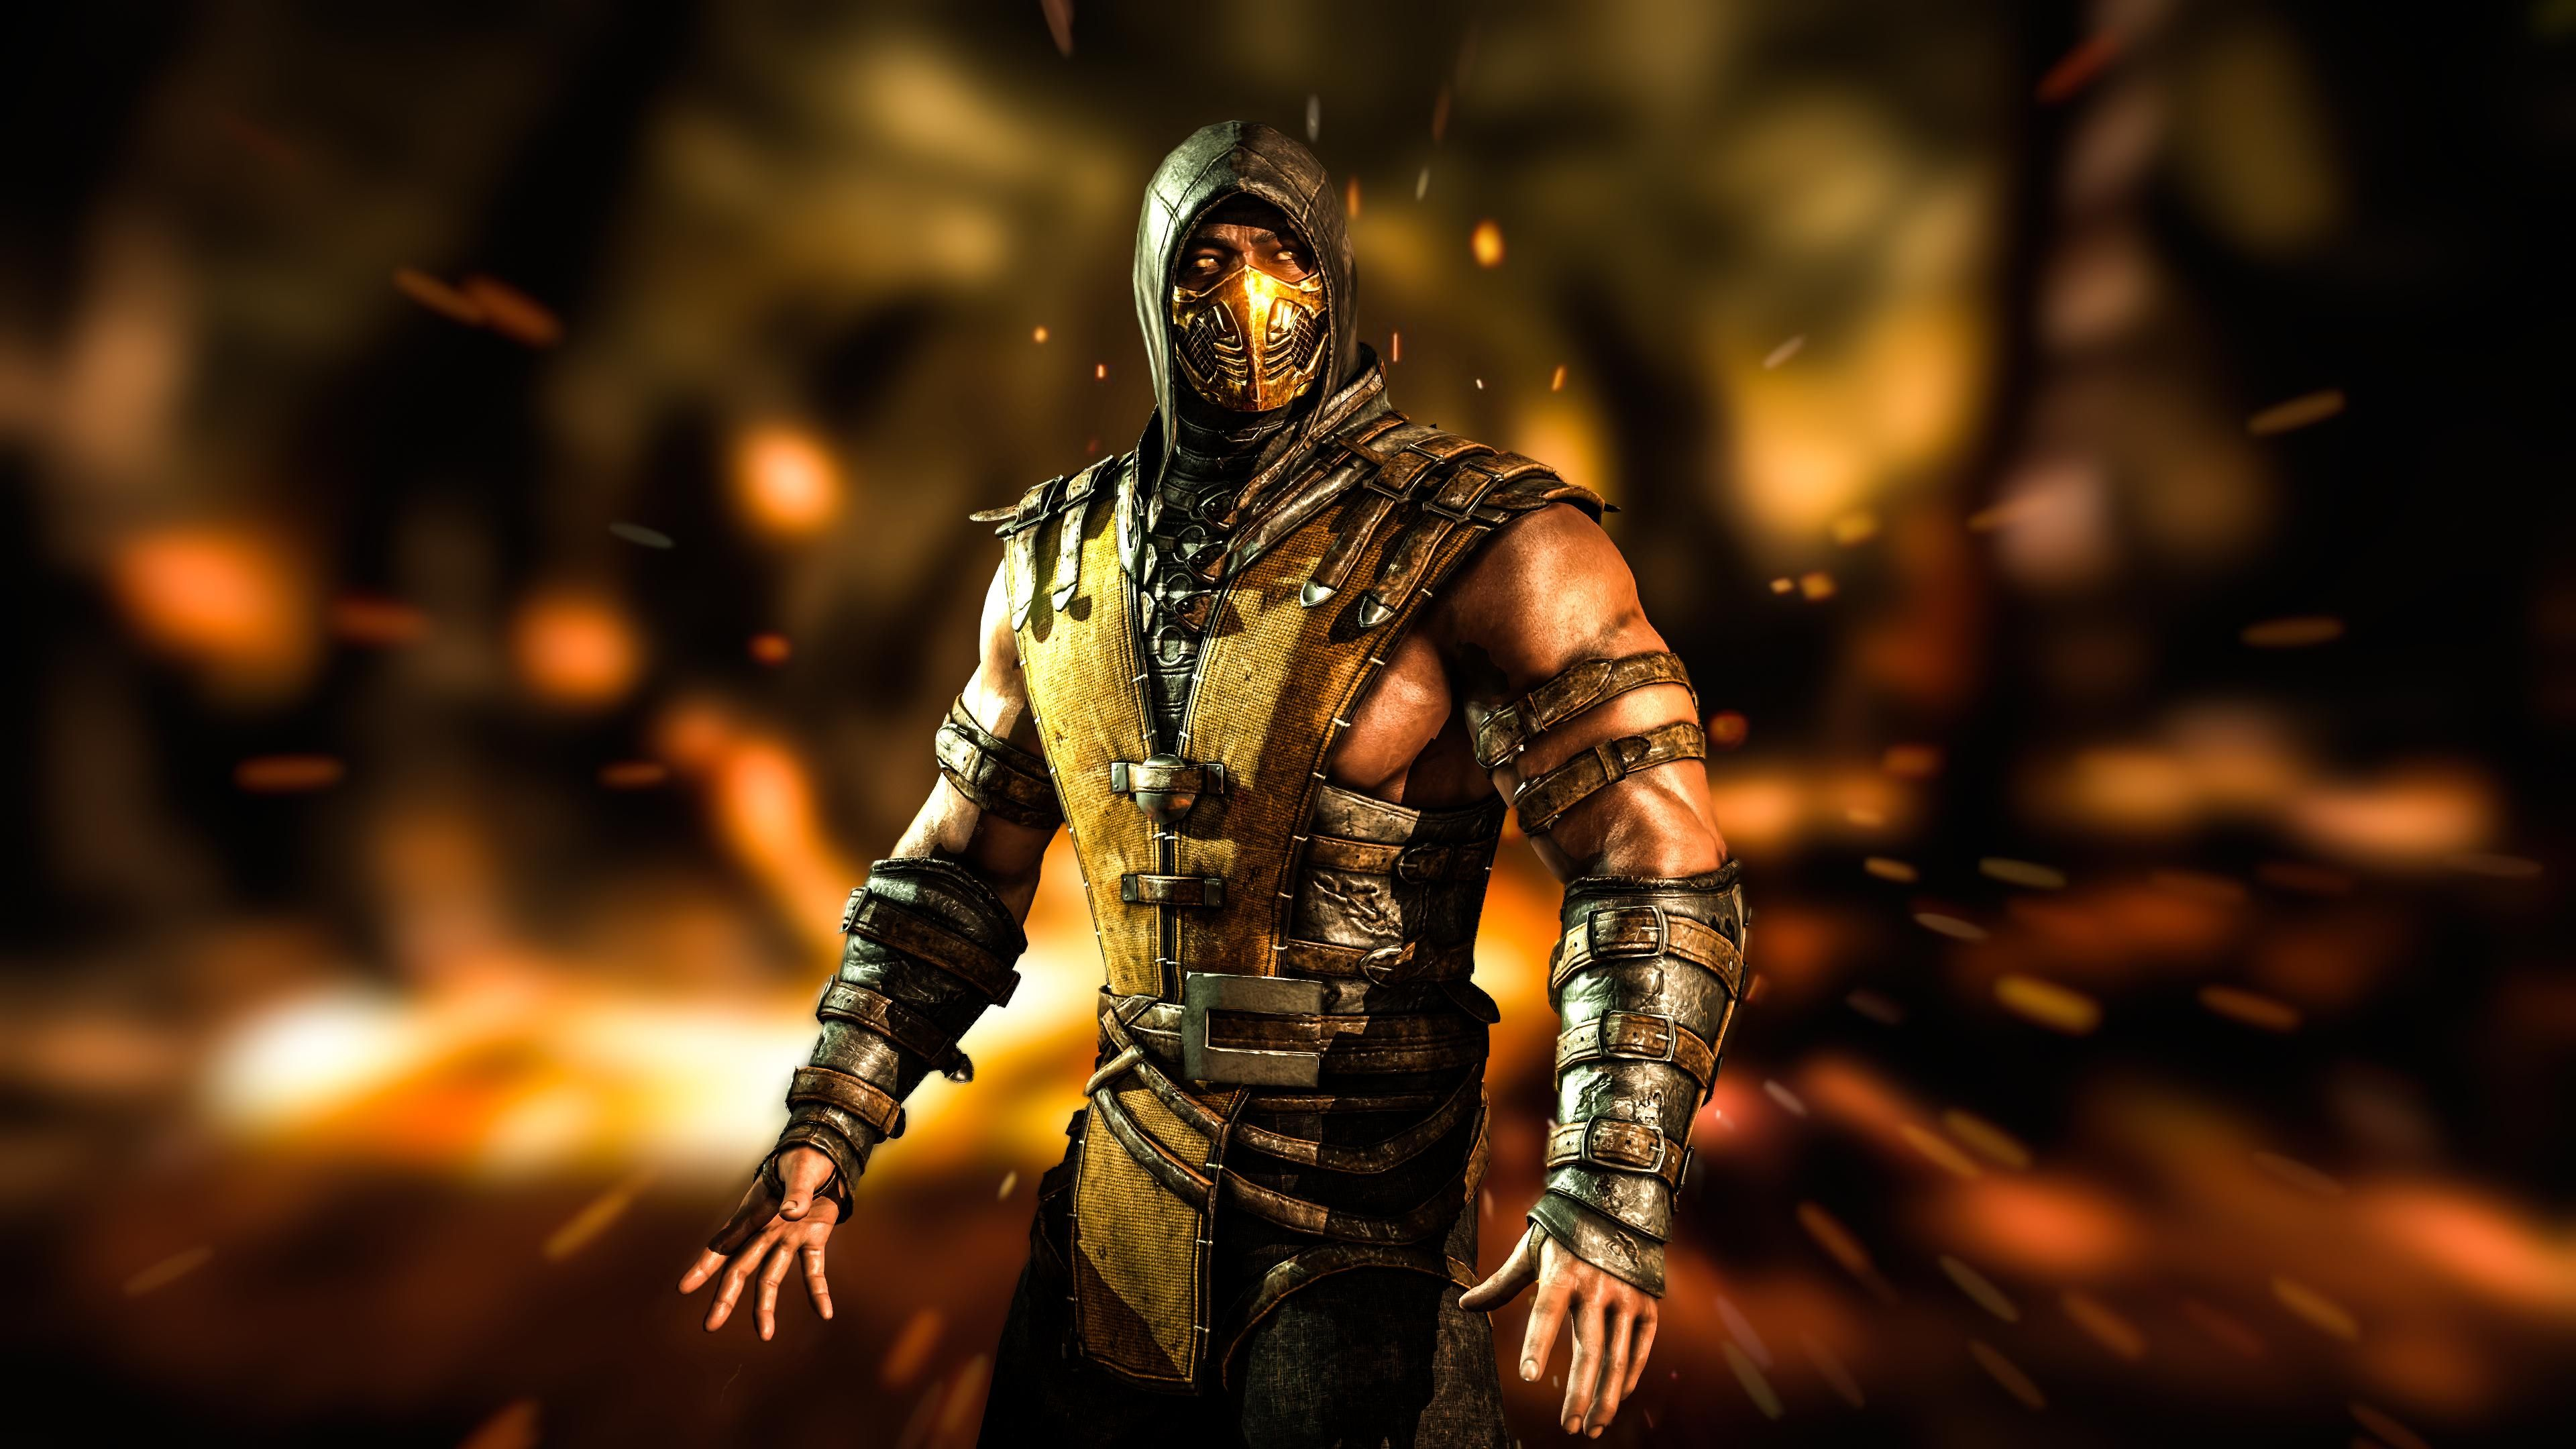 mortal kombat x scorpion wallpaper hd desktop widescreen